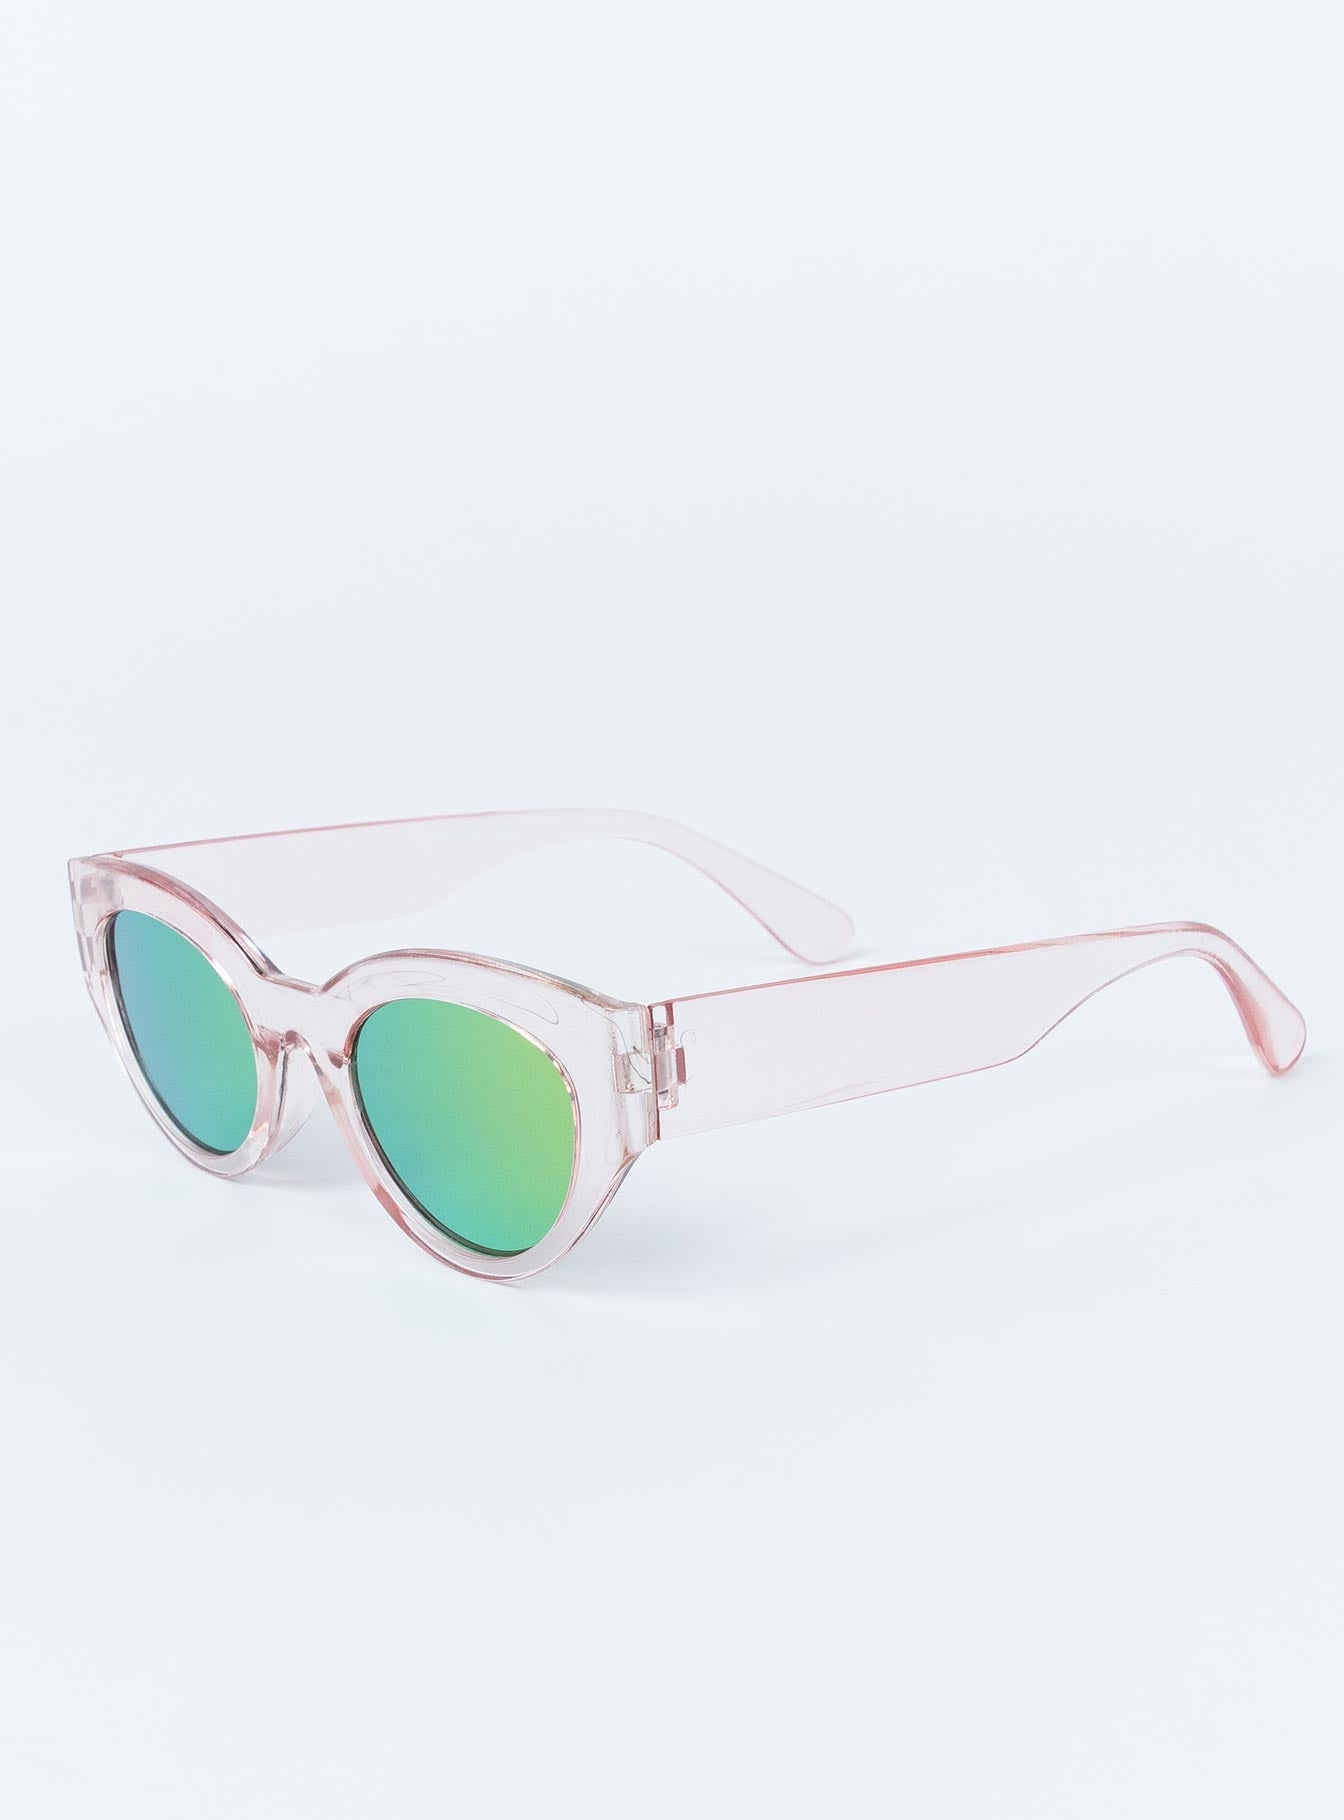 Addicted To Love Sunglasses Pink